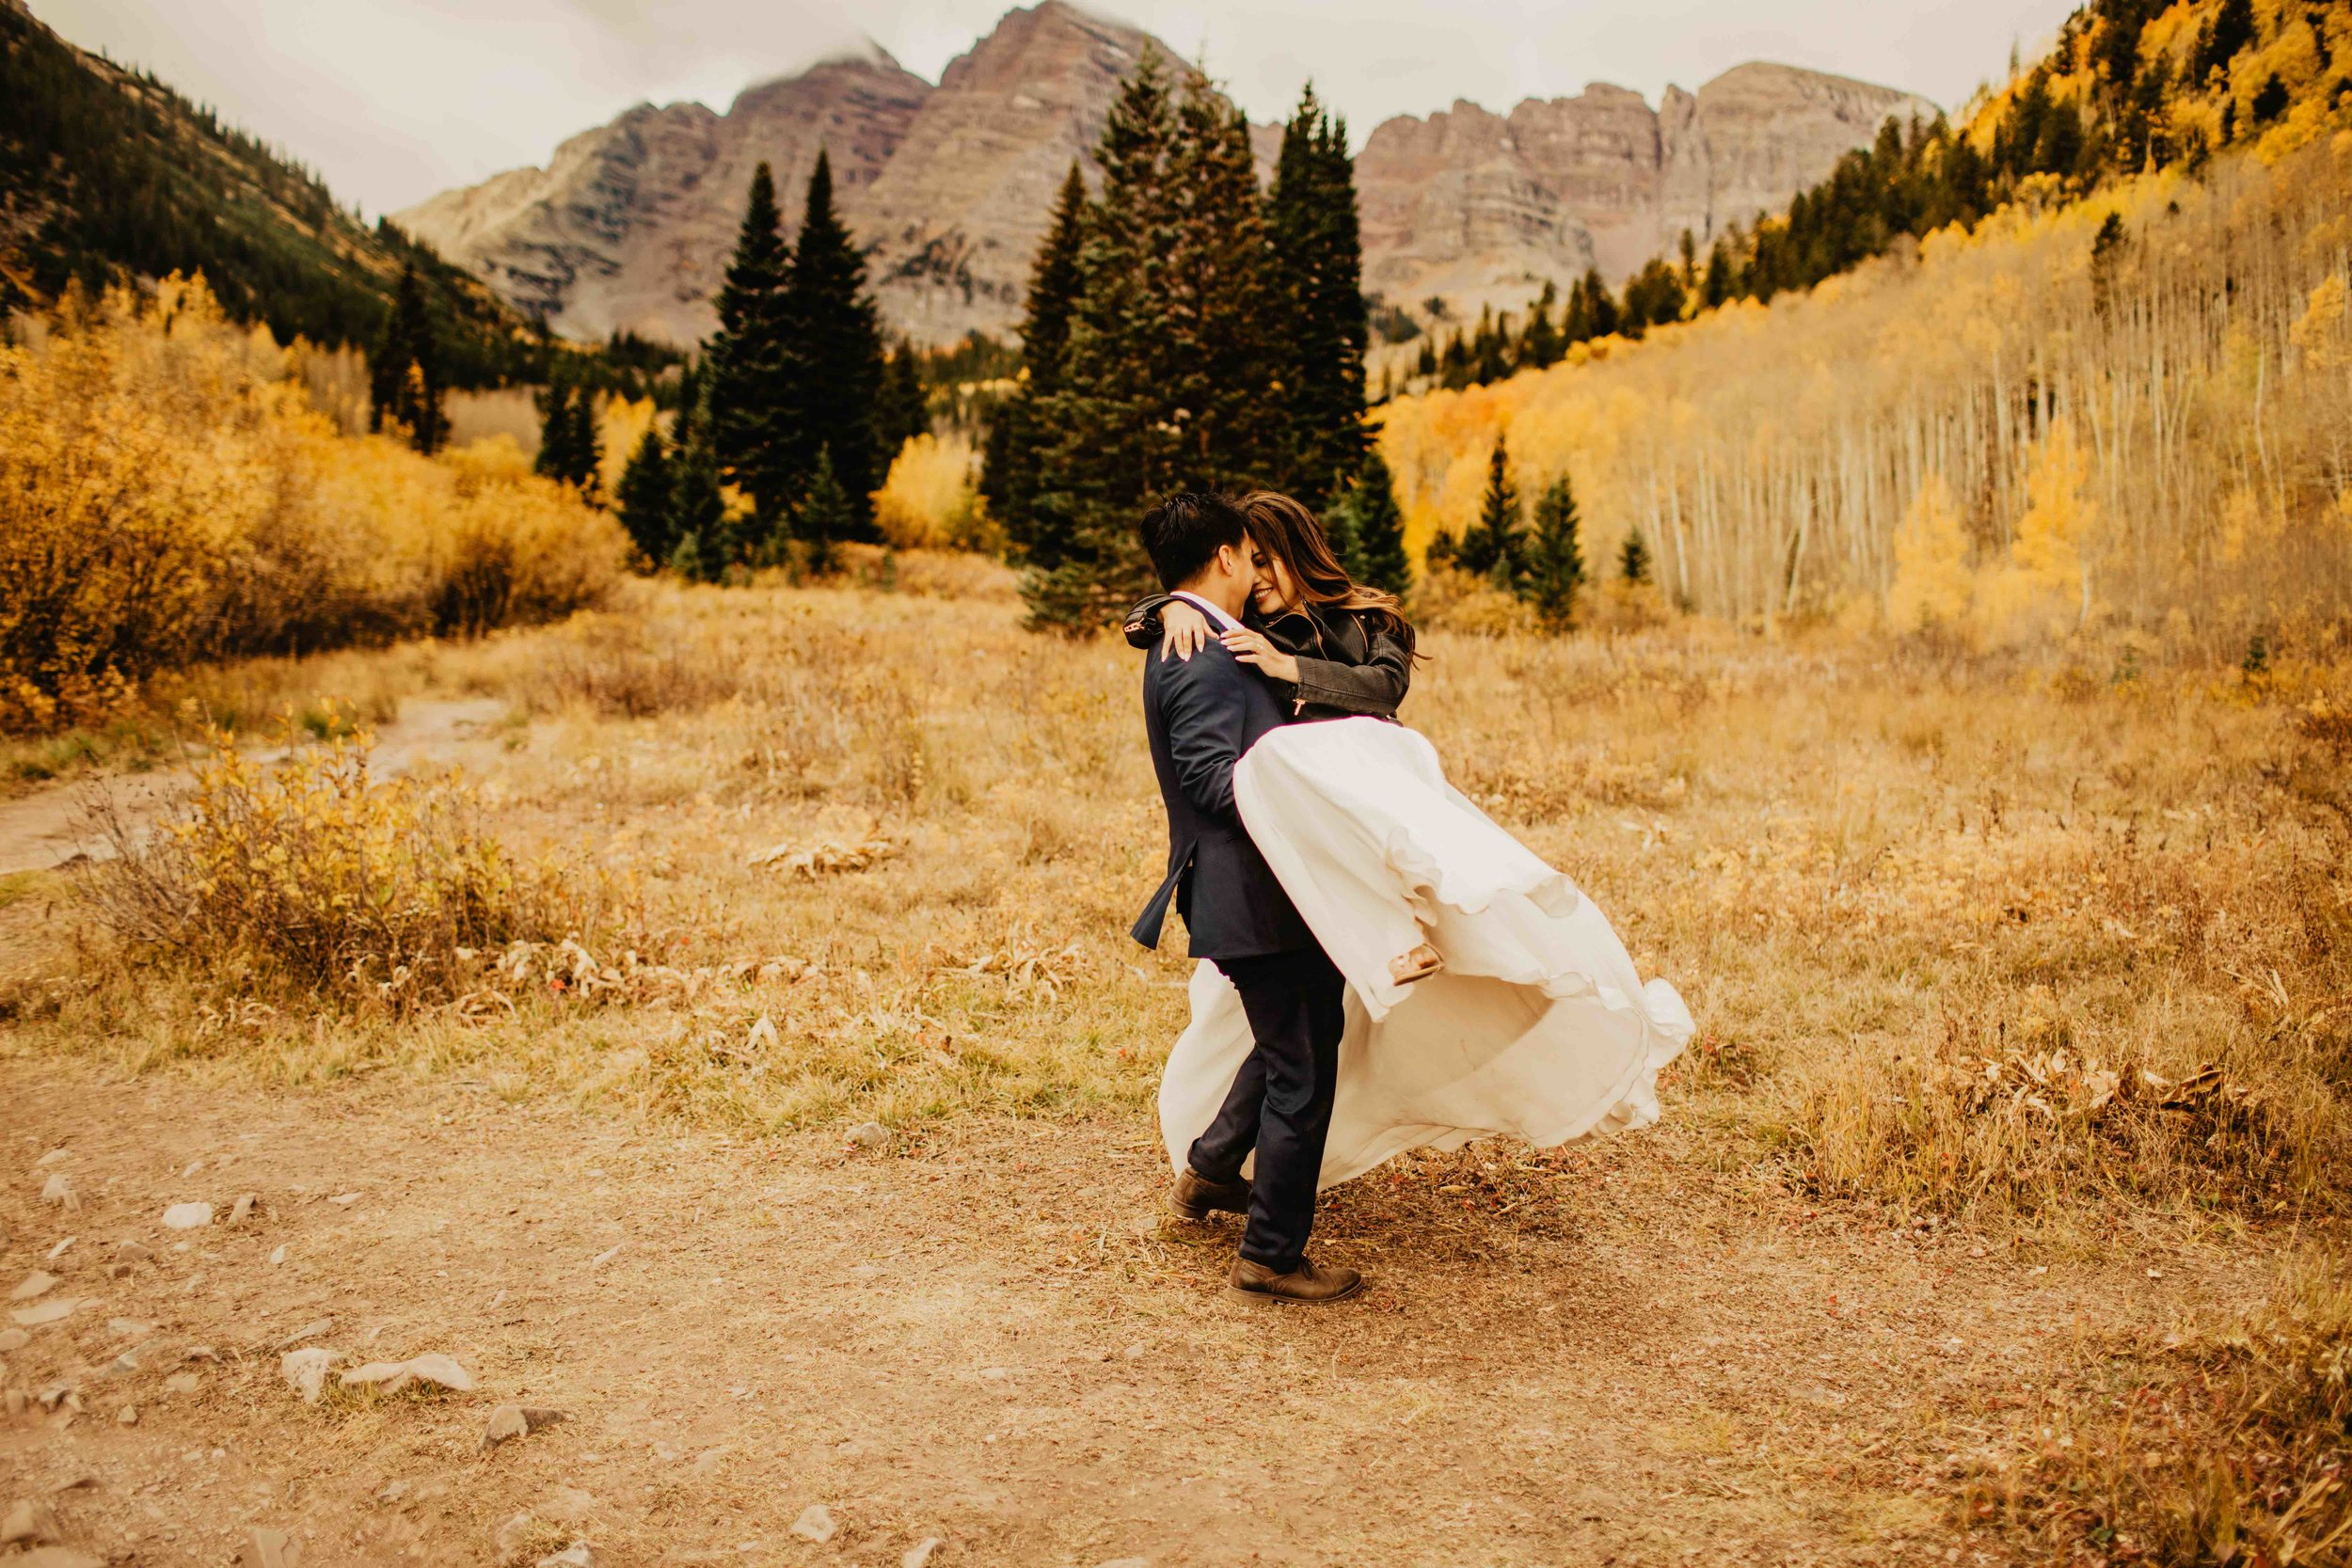 -colorado-springs-wedding-photography-shrine-pass-www.kisaconrad.com-.jpg